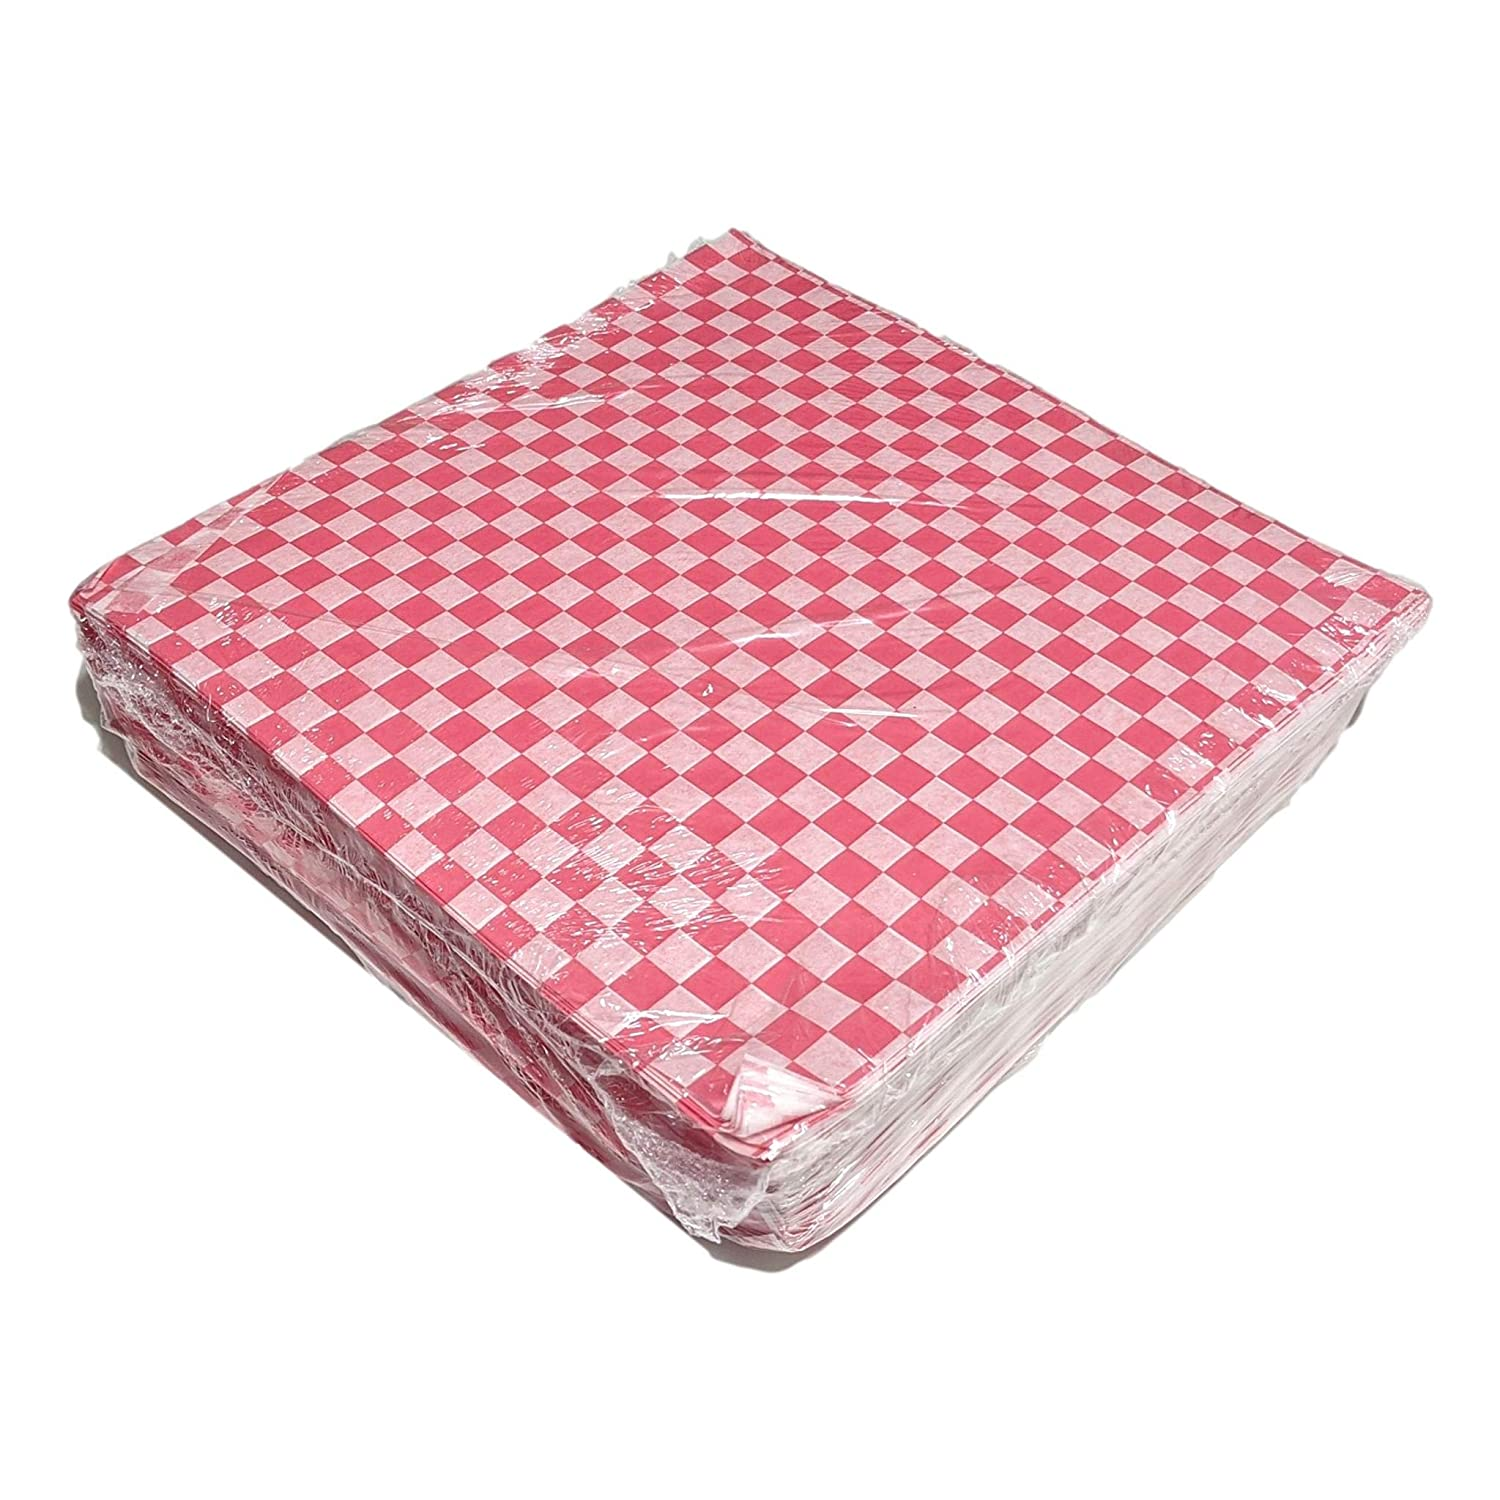 Paterson Paper Sandwich Food Wrapping Paper Deli Sheet Squares (Red Checkers, 12